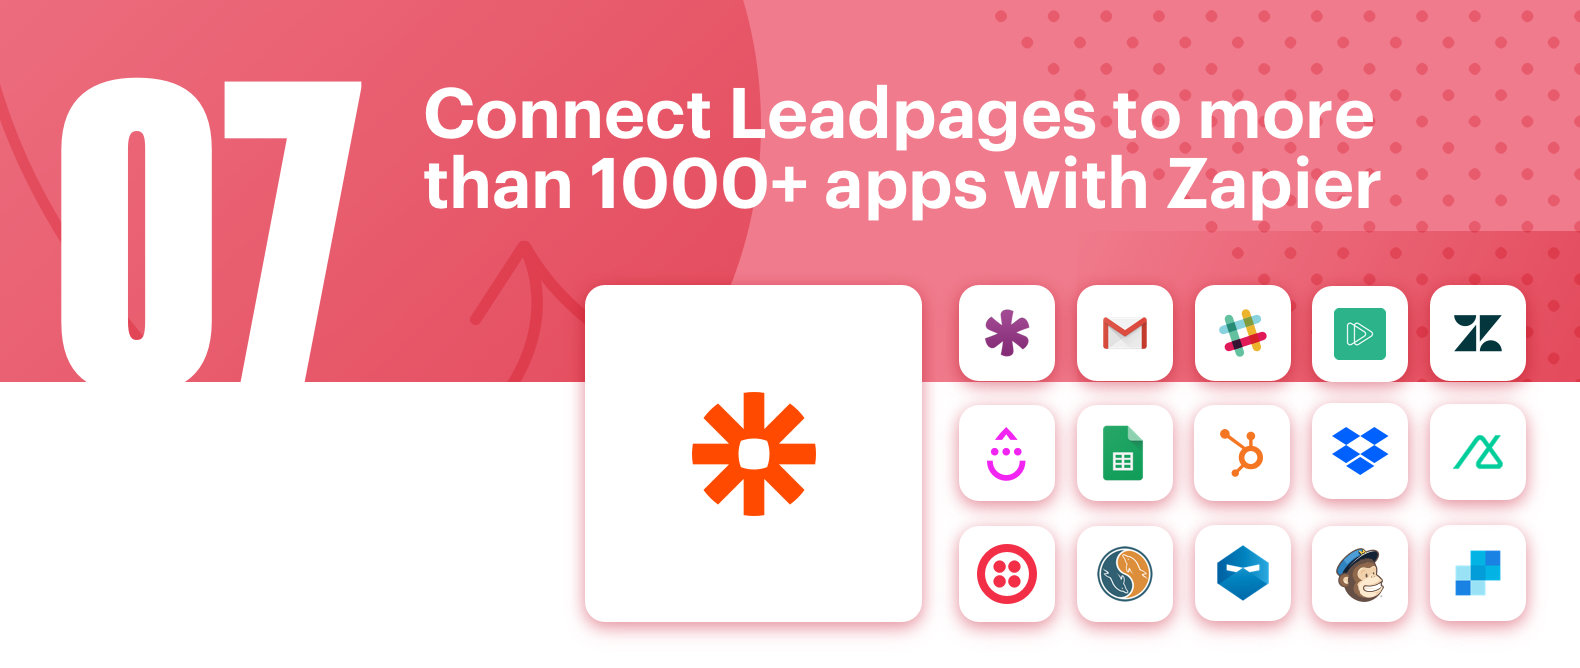 Connect Leadpages to more than 1000+ apps with Zapier